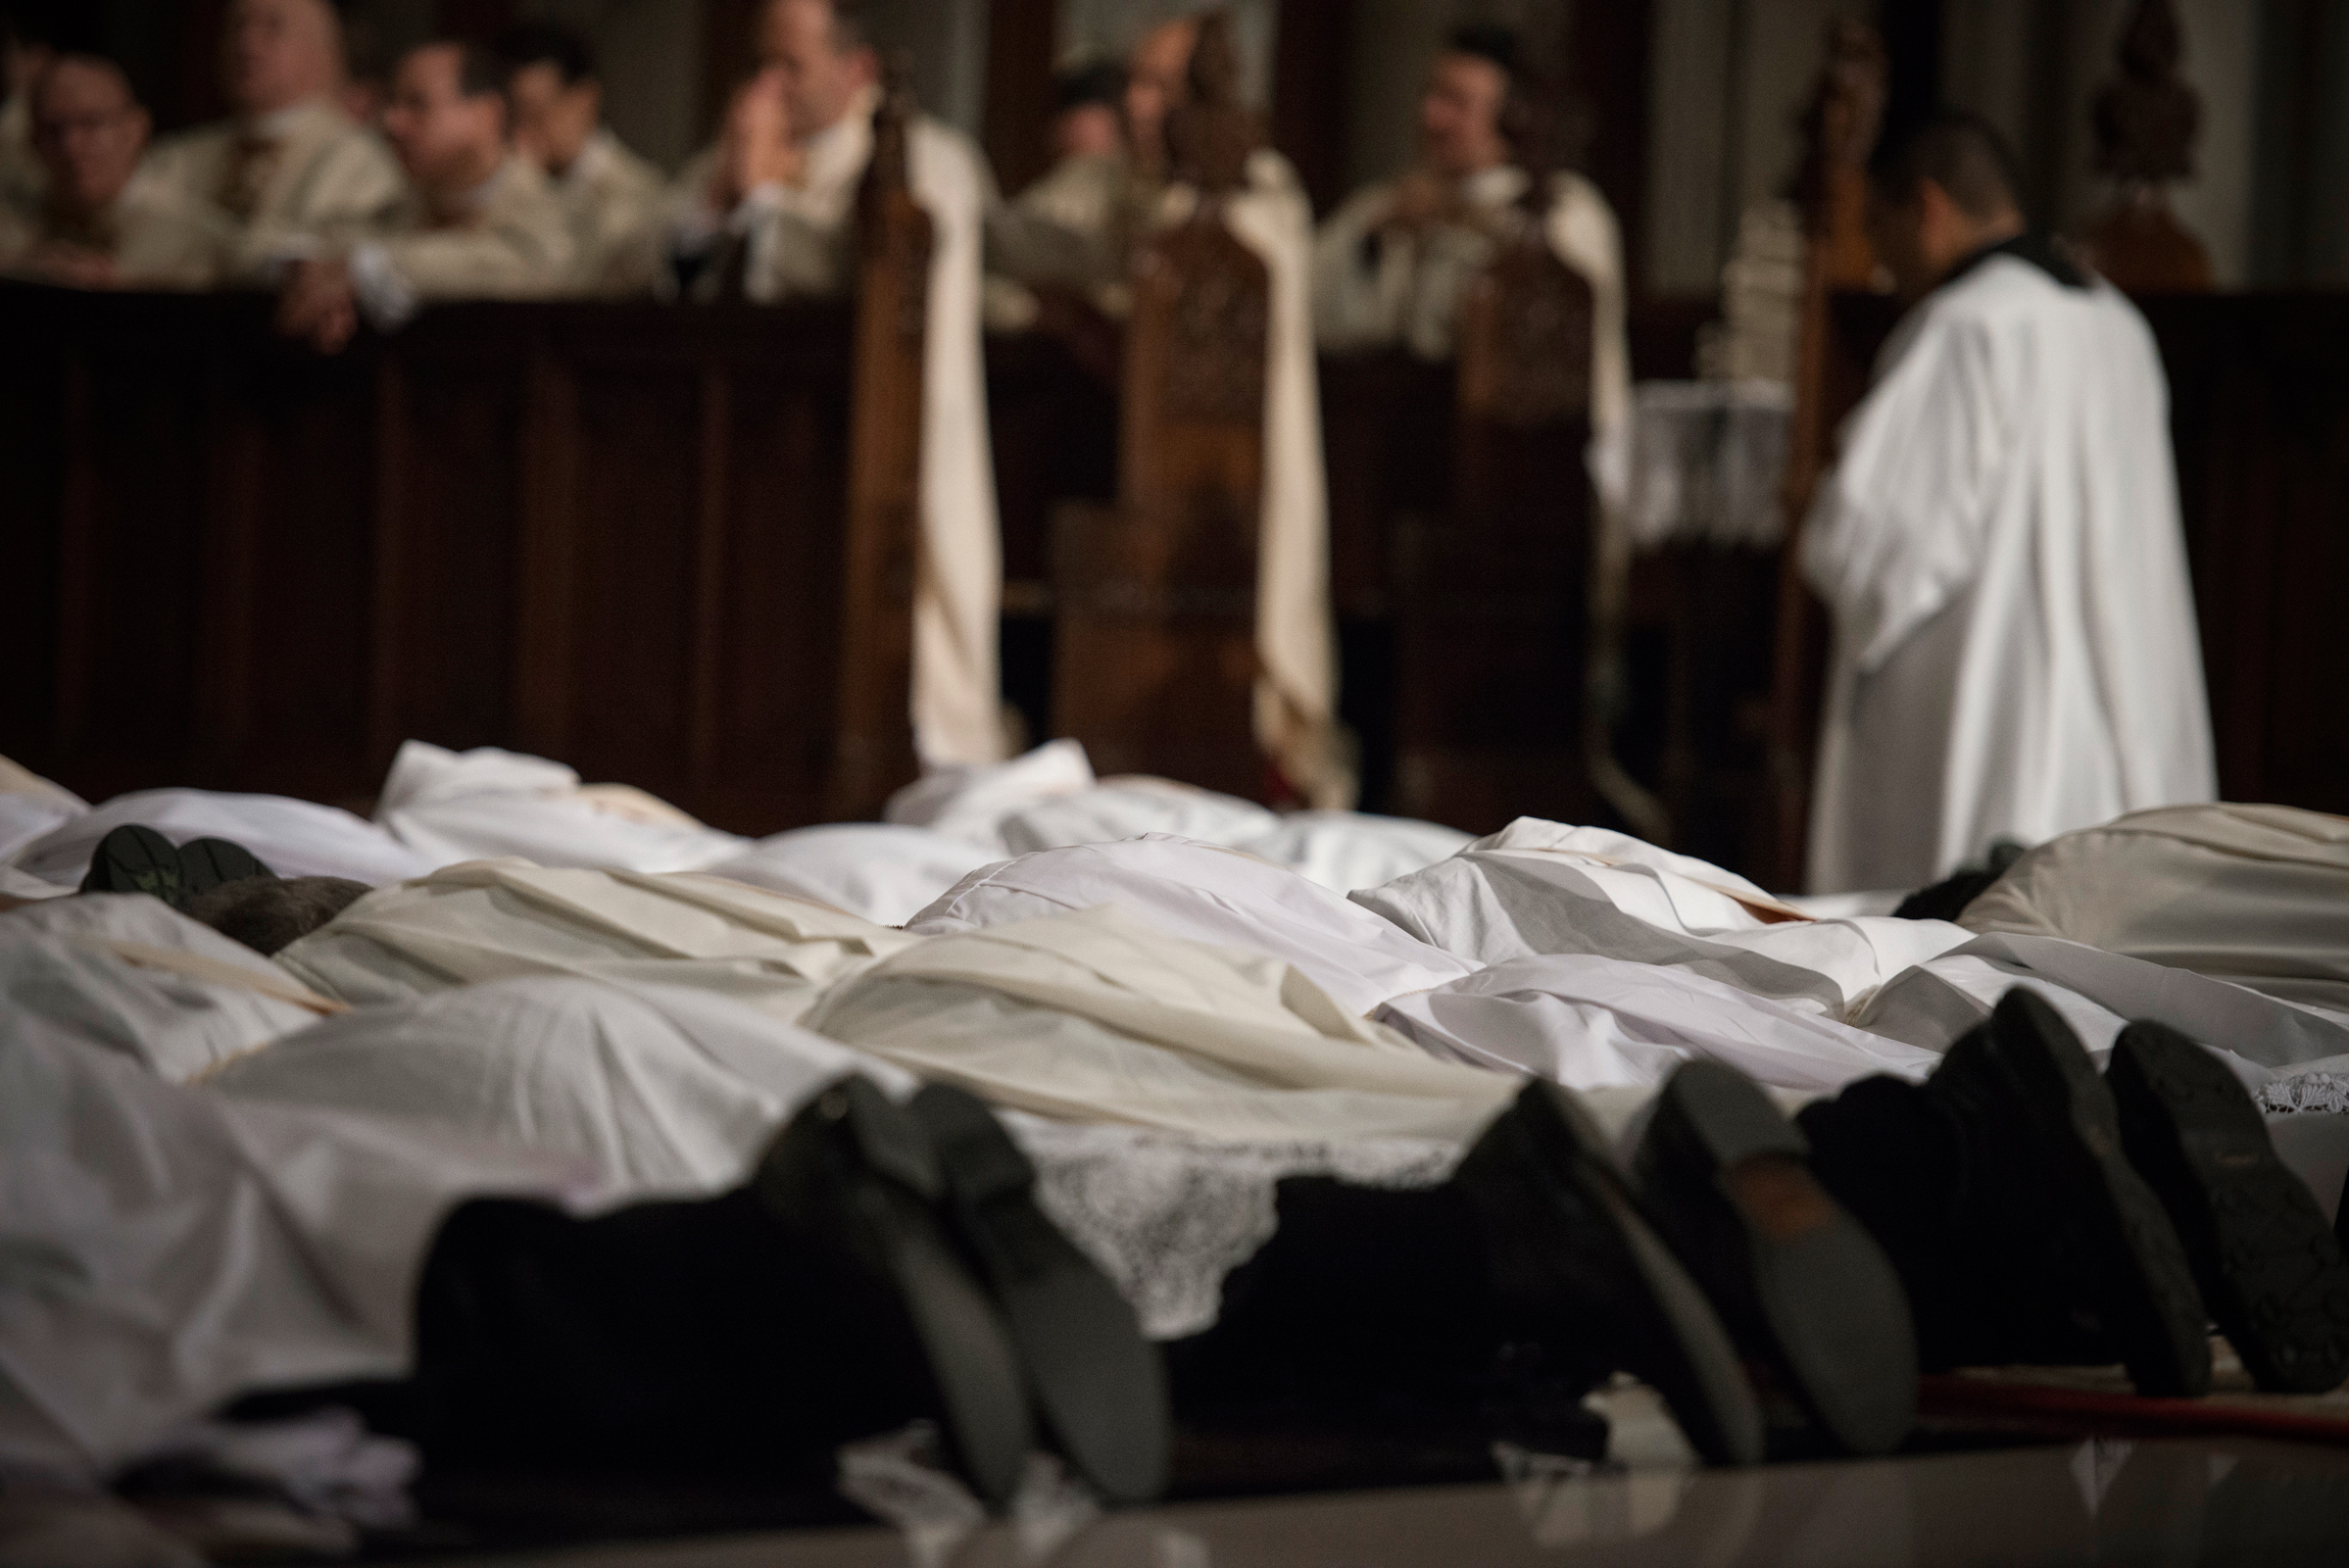 Each man prostrates himself to symbolize his unworthiness for the office to be assumed and his dependence upon God and the prayers of the Christian community. (USCCB)